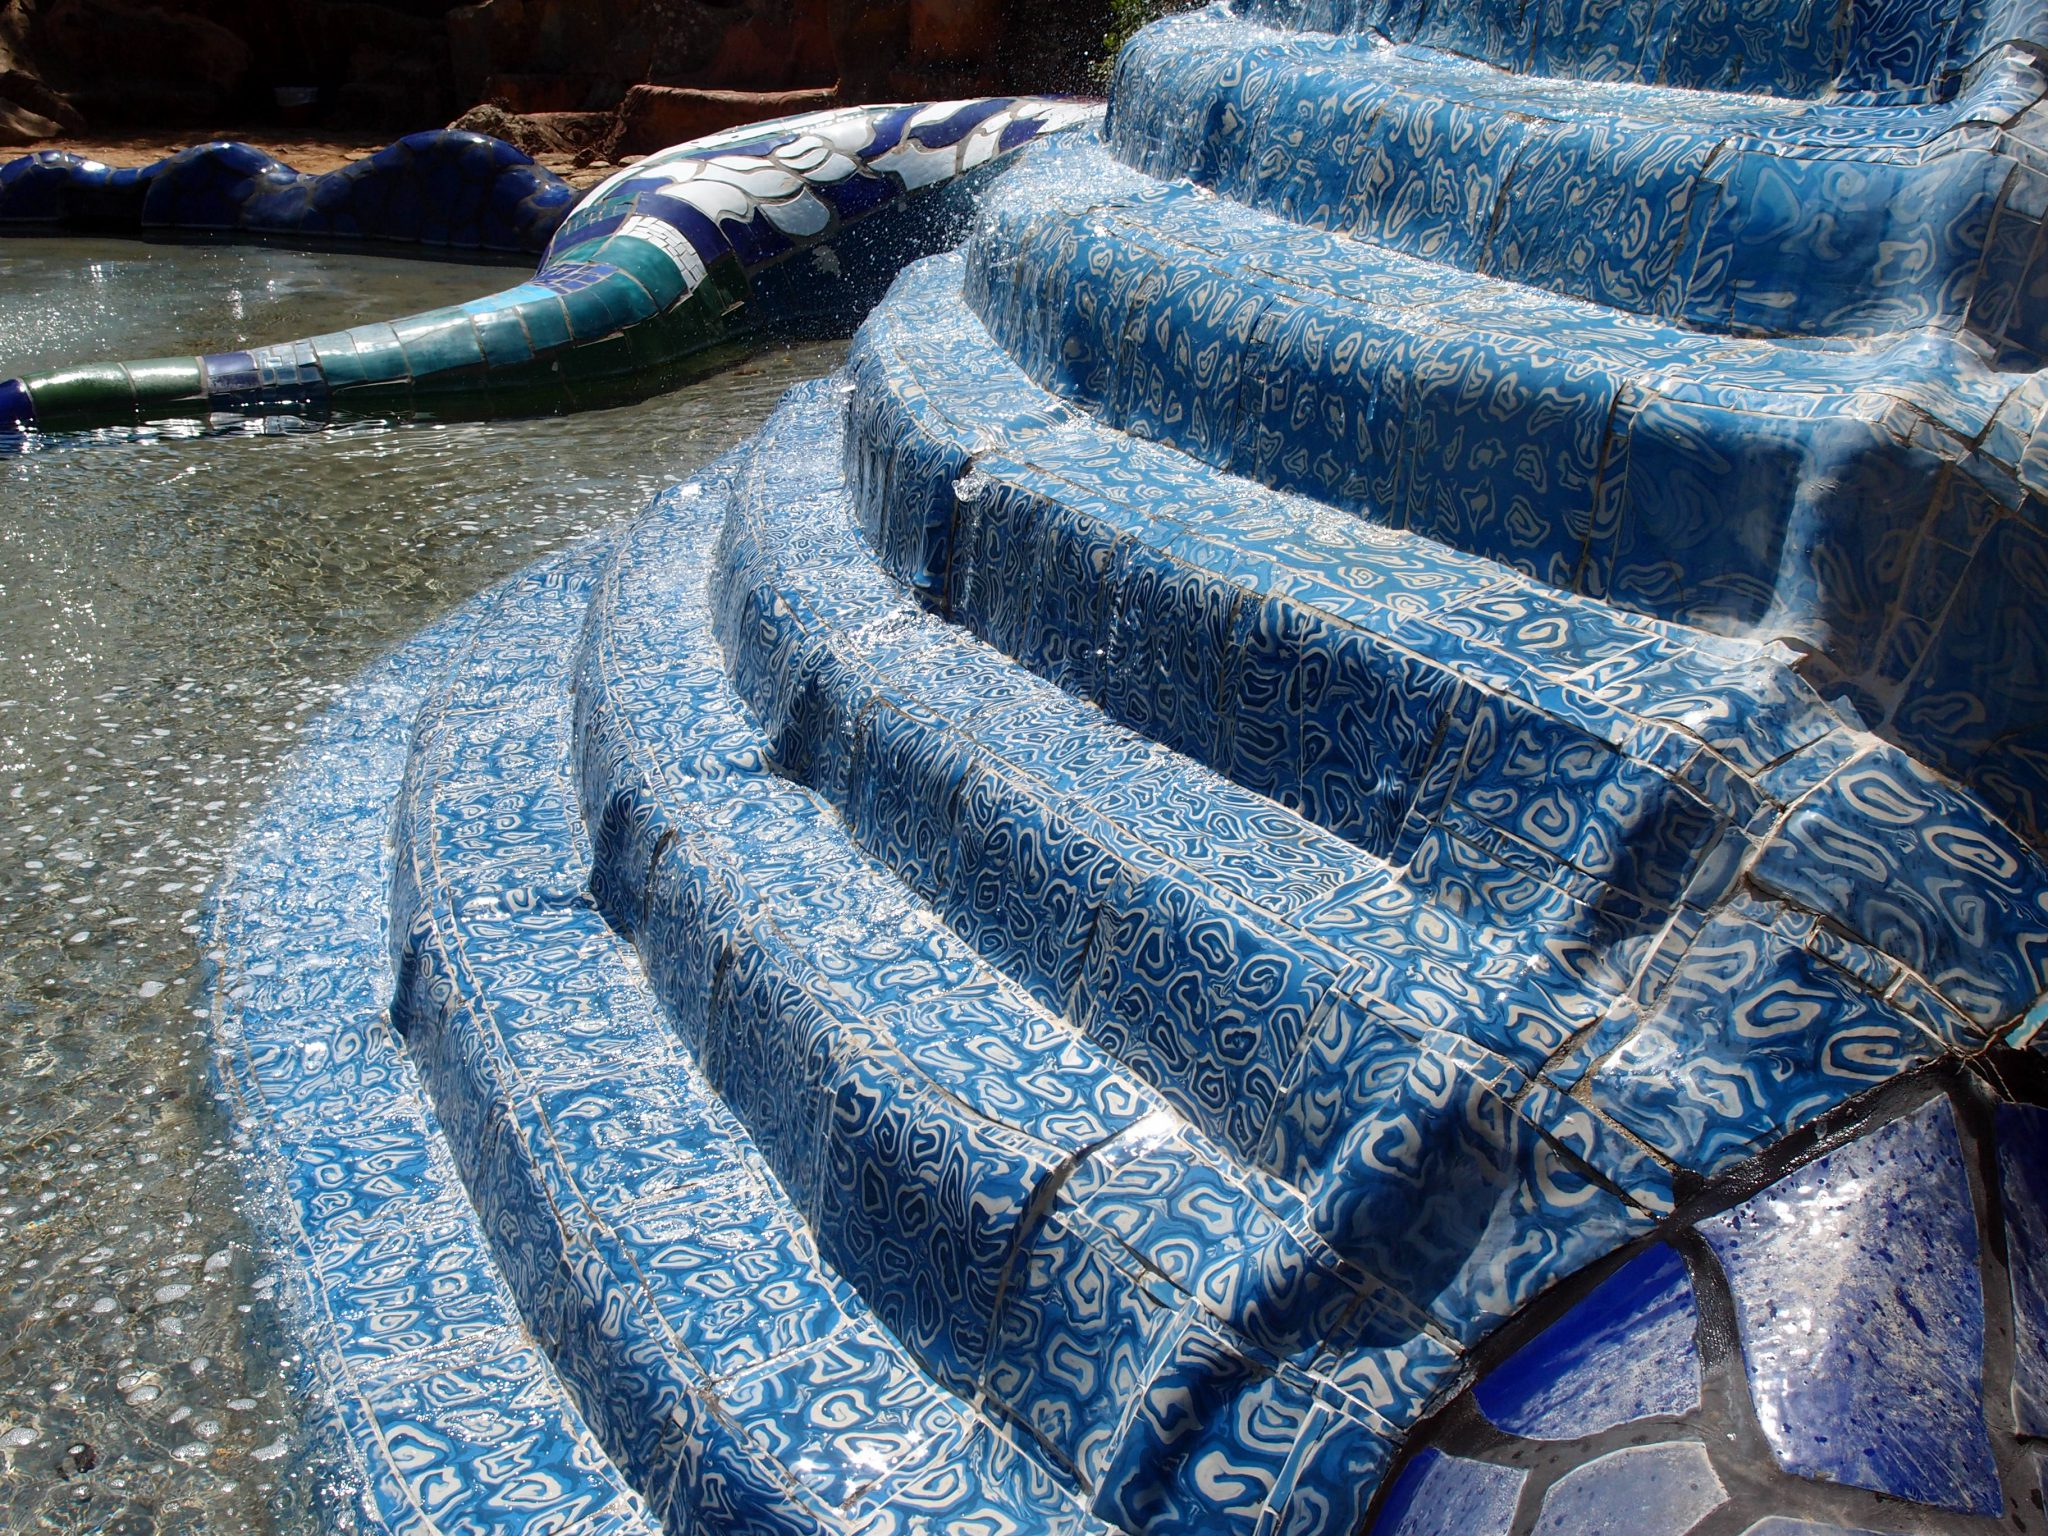 Detail of hand-made tiles, on the High Priestess water-cascade.